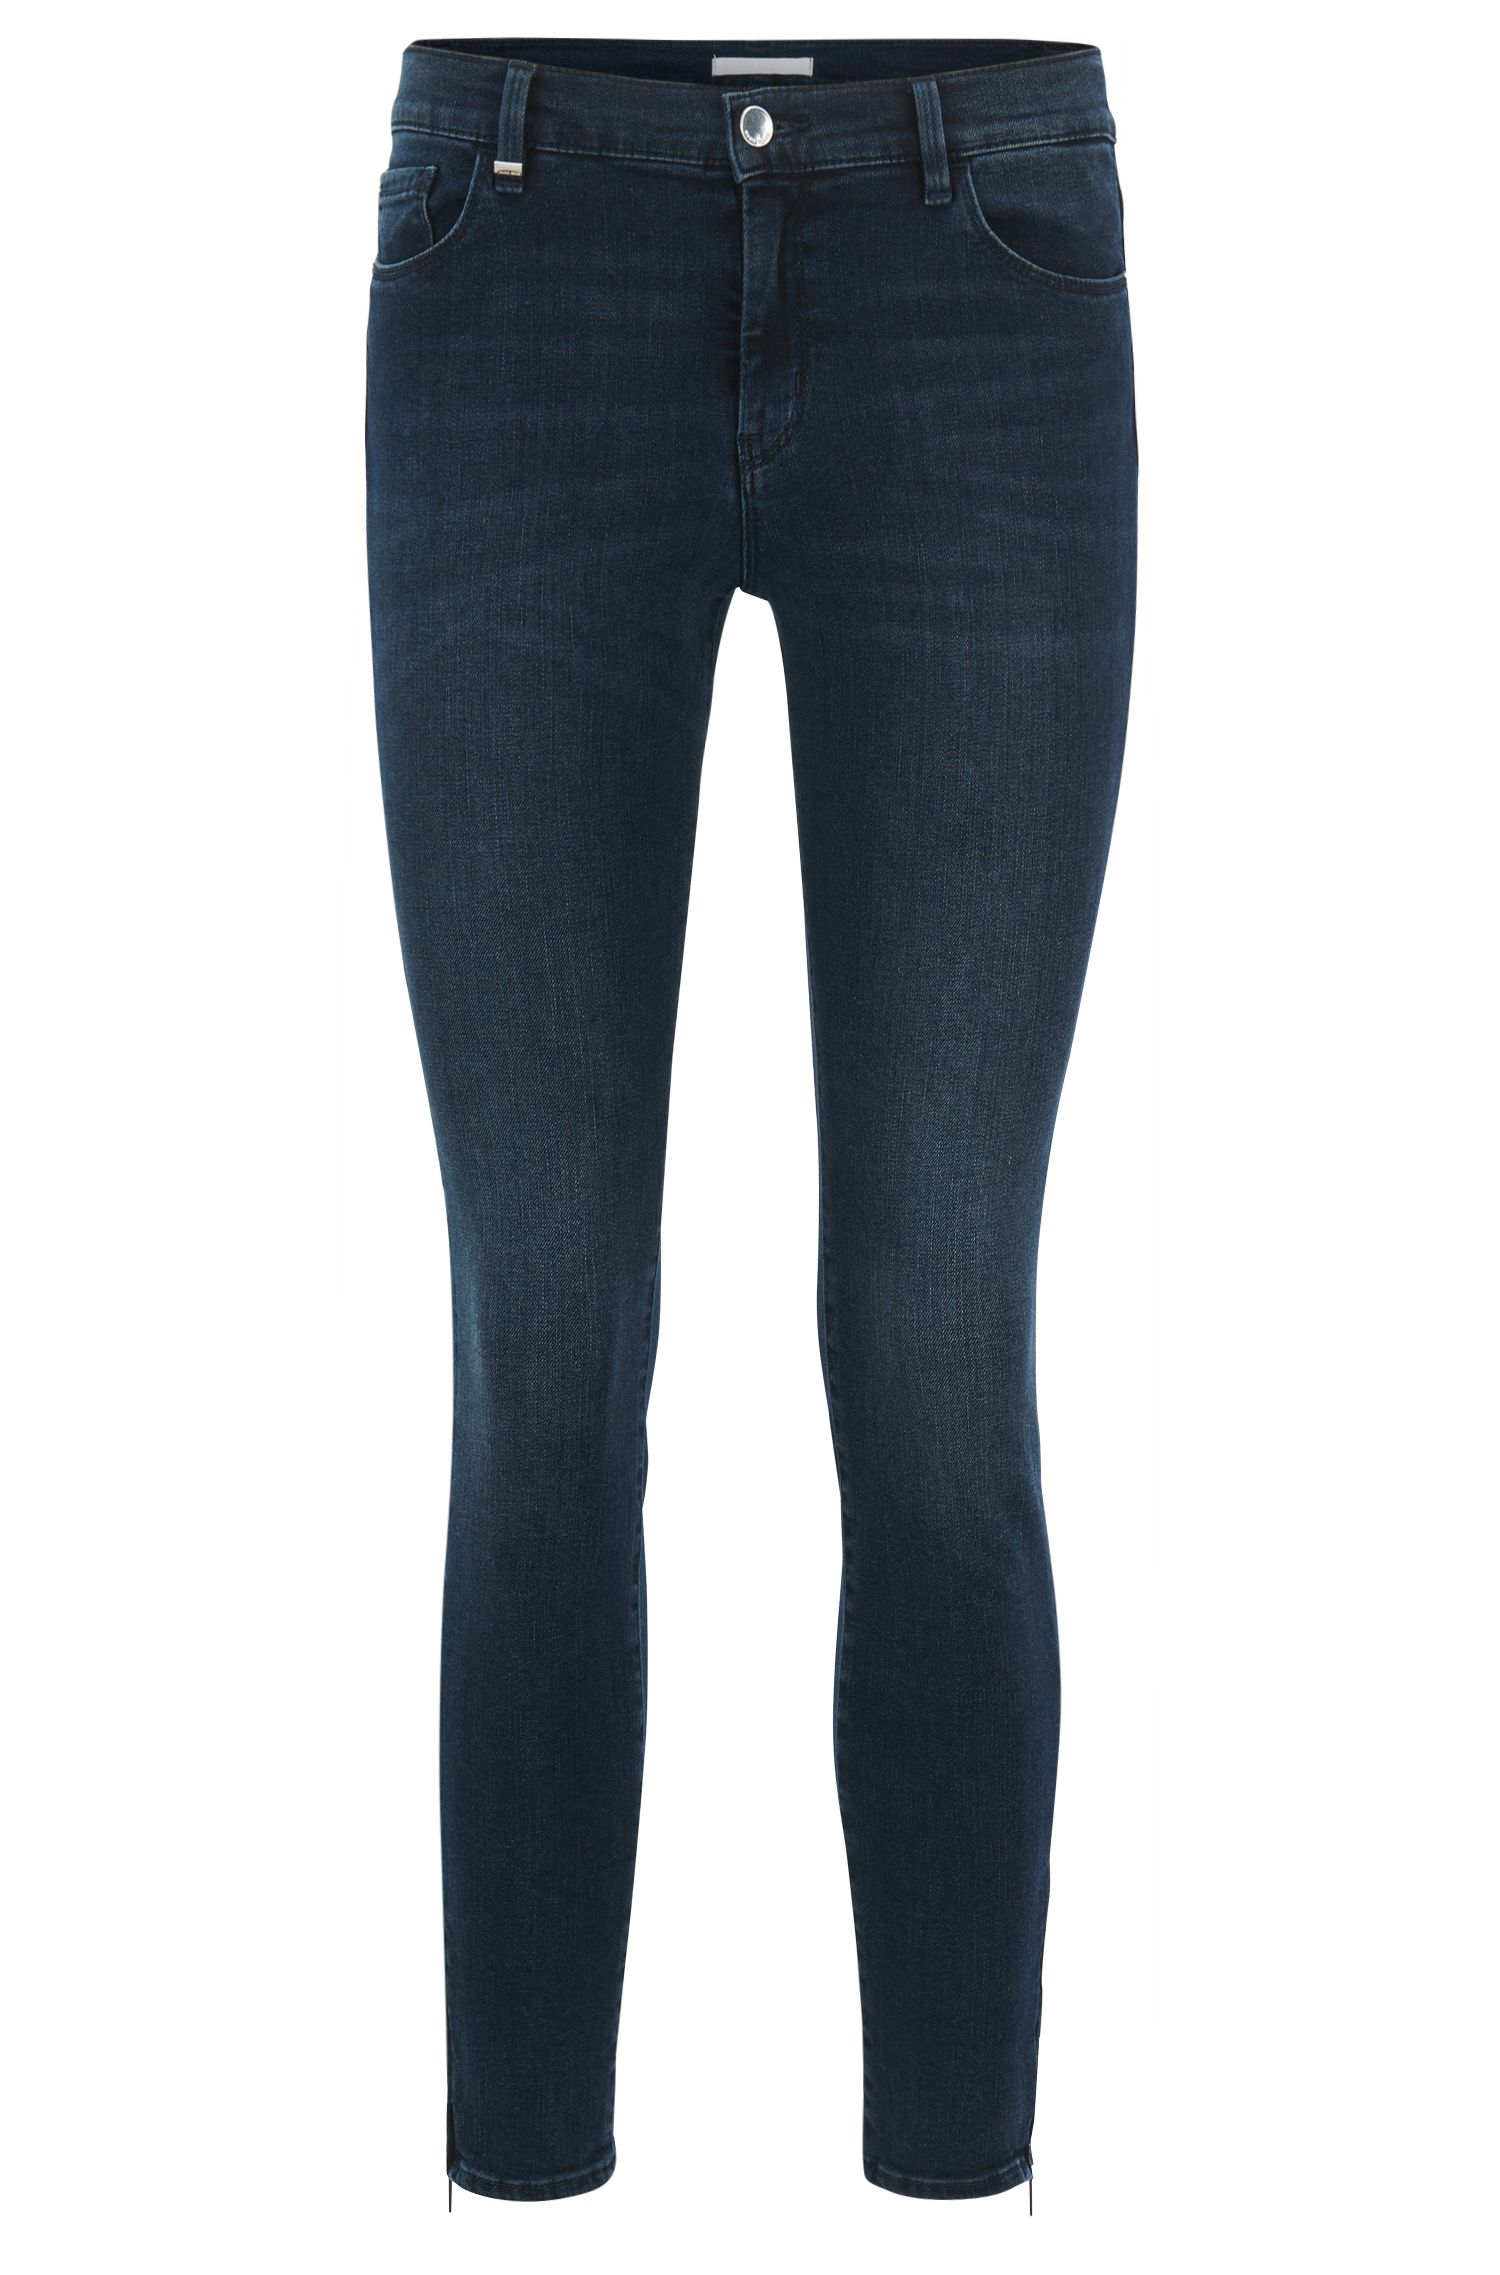 Jean Slim Fit en denim super stretch à ourlets zippés, Bleu foncé